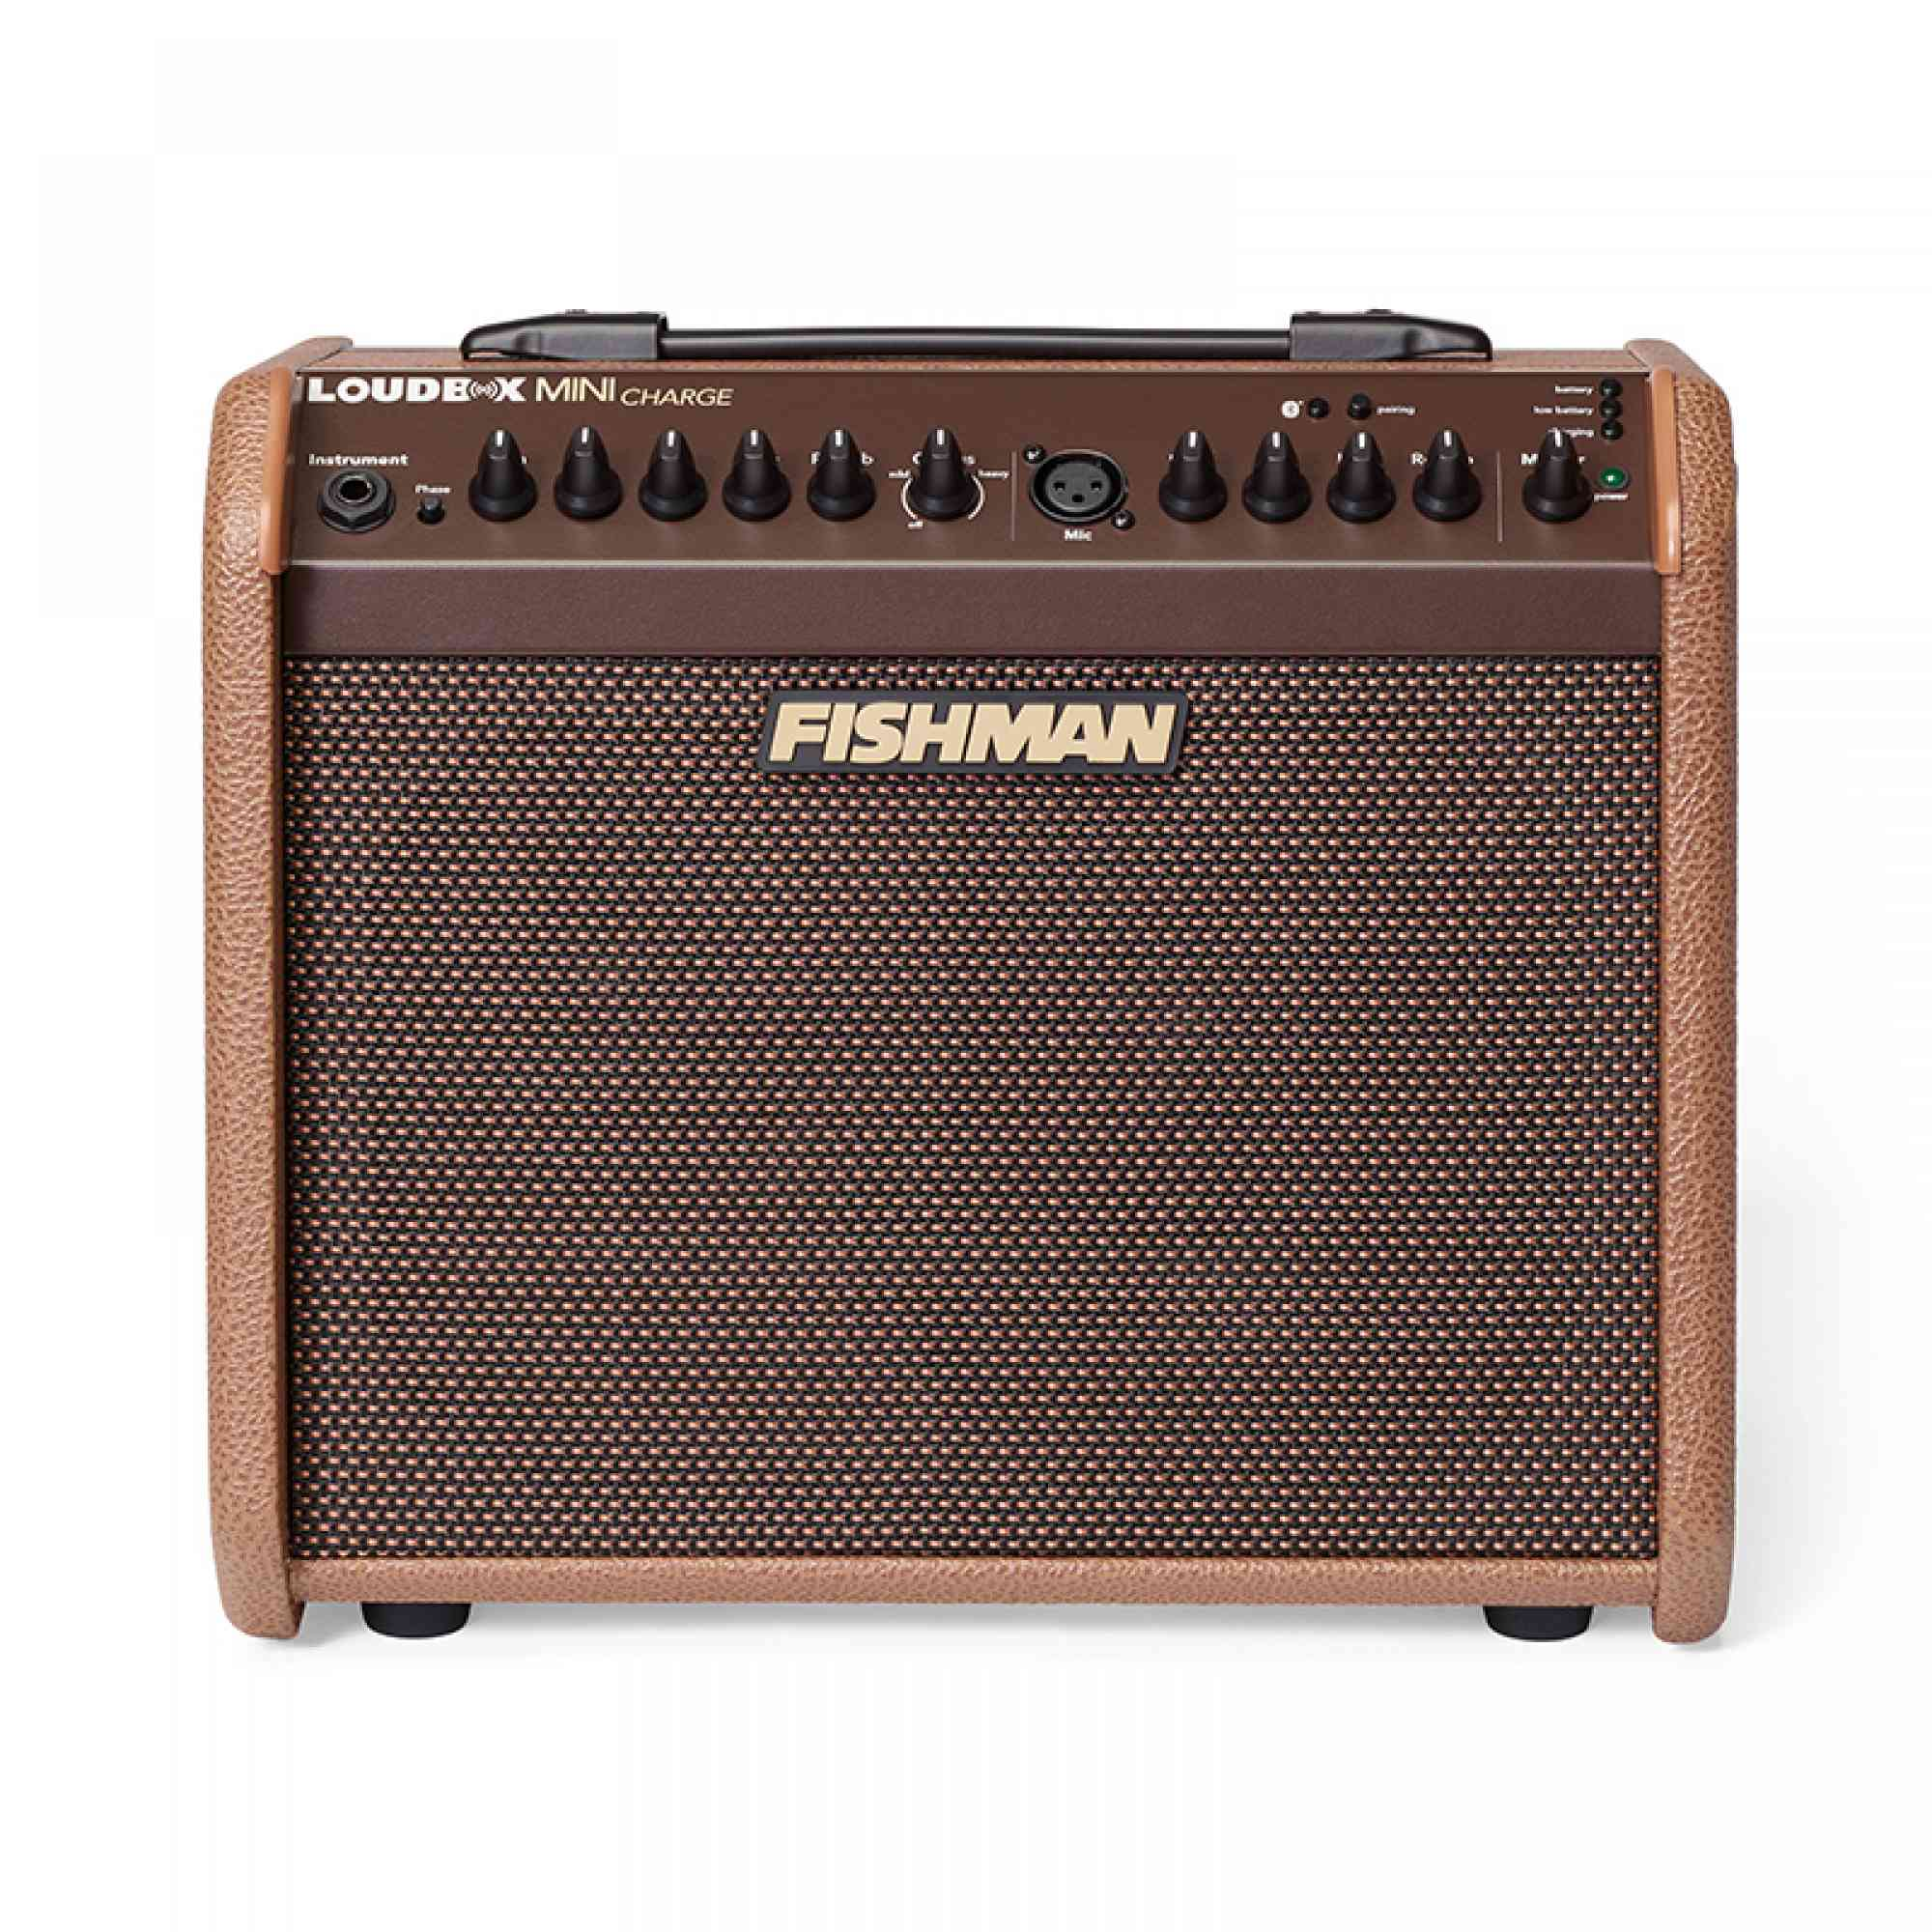 Fishman Loudbox Min Charge  . Click to enlarge